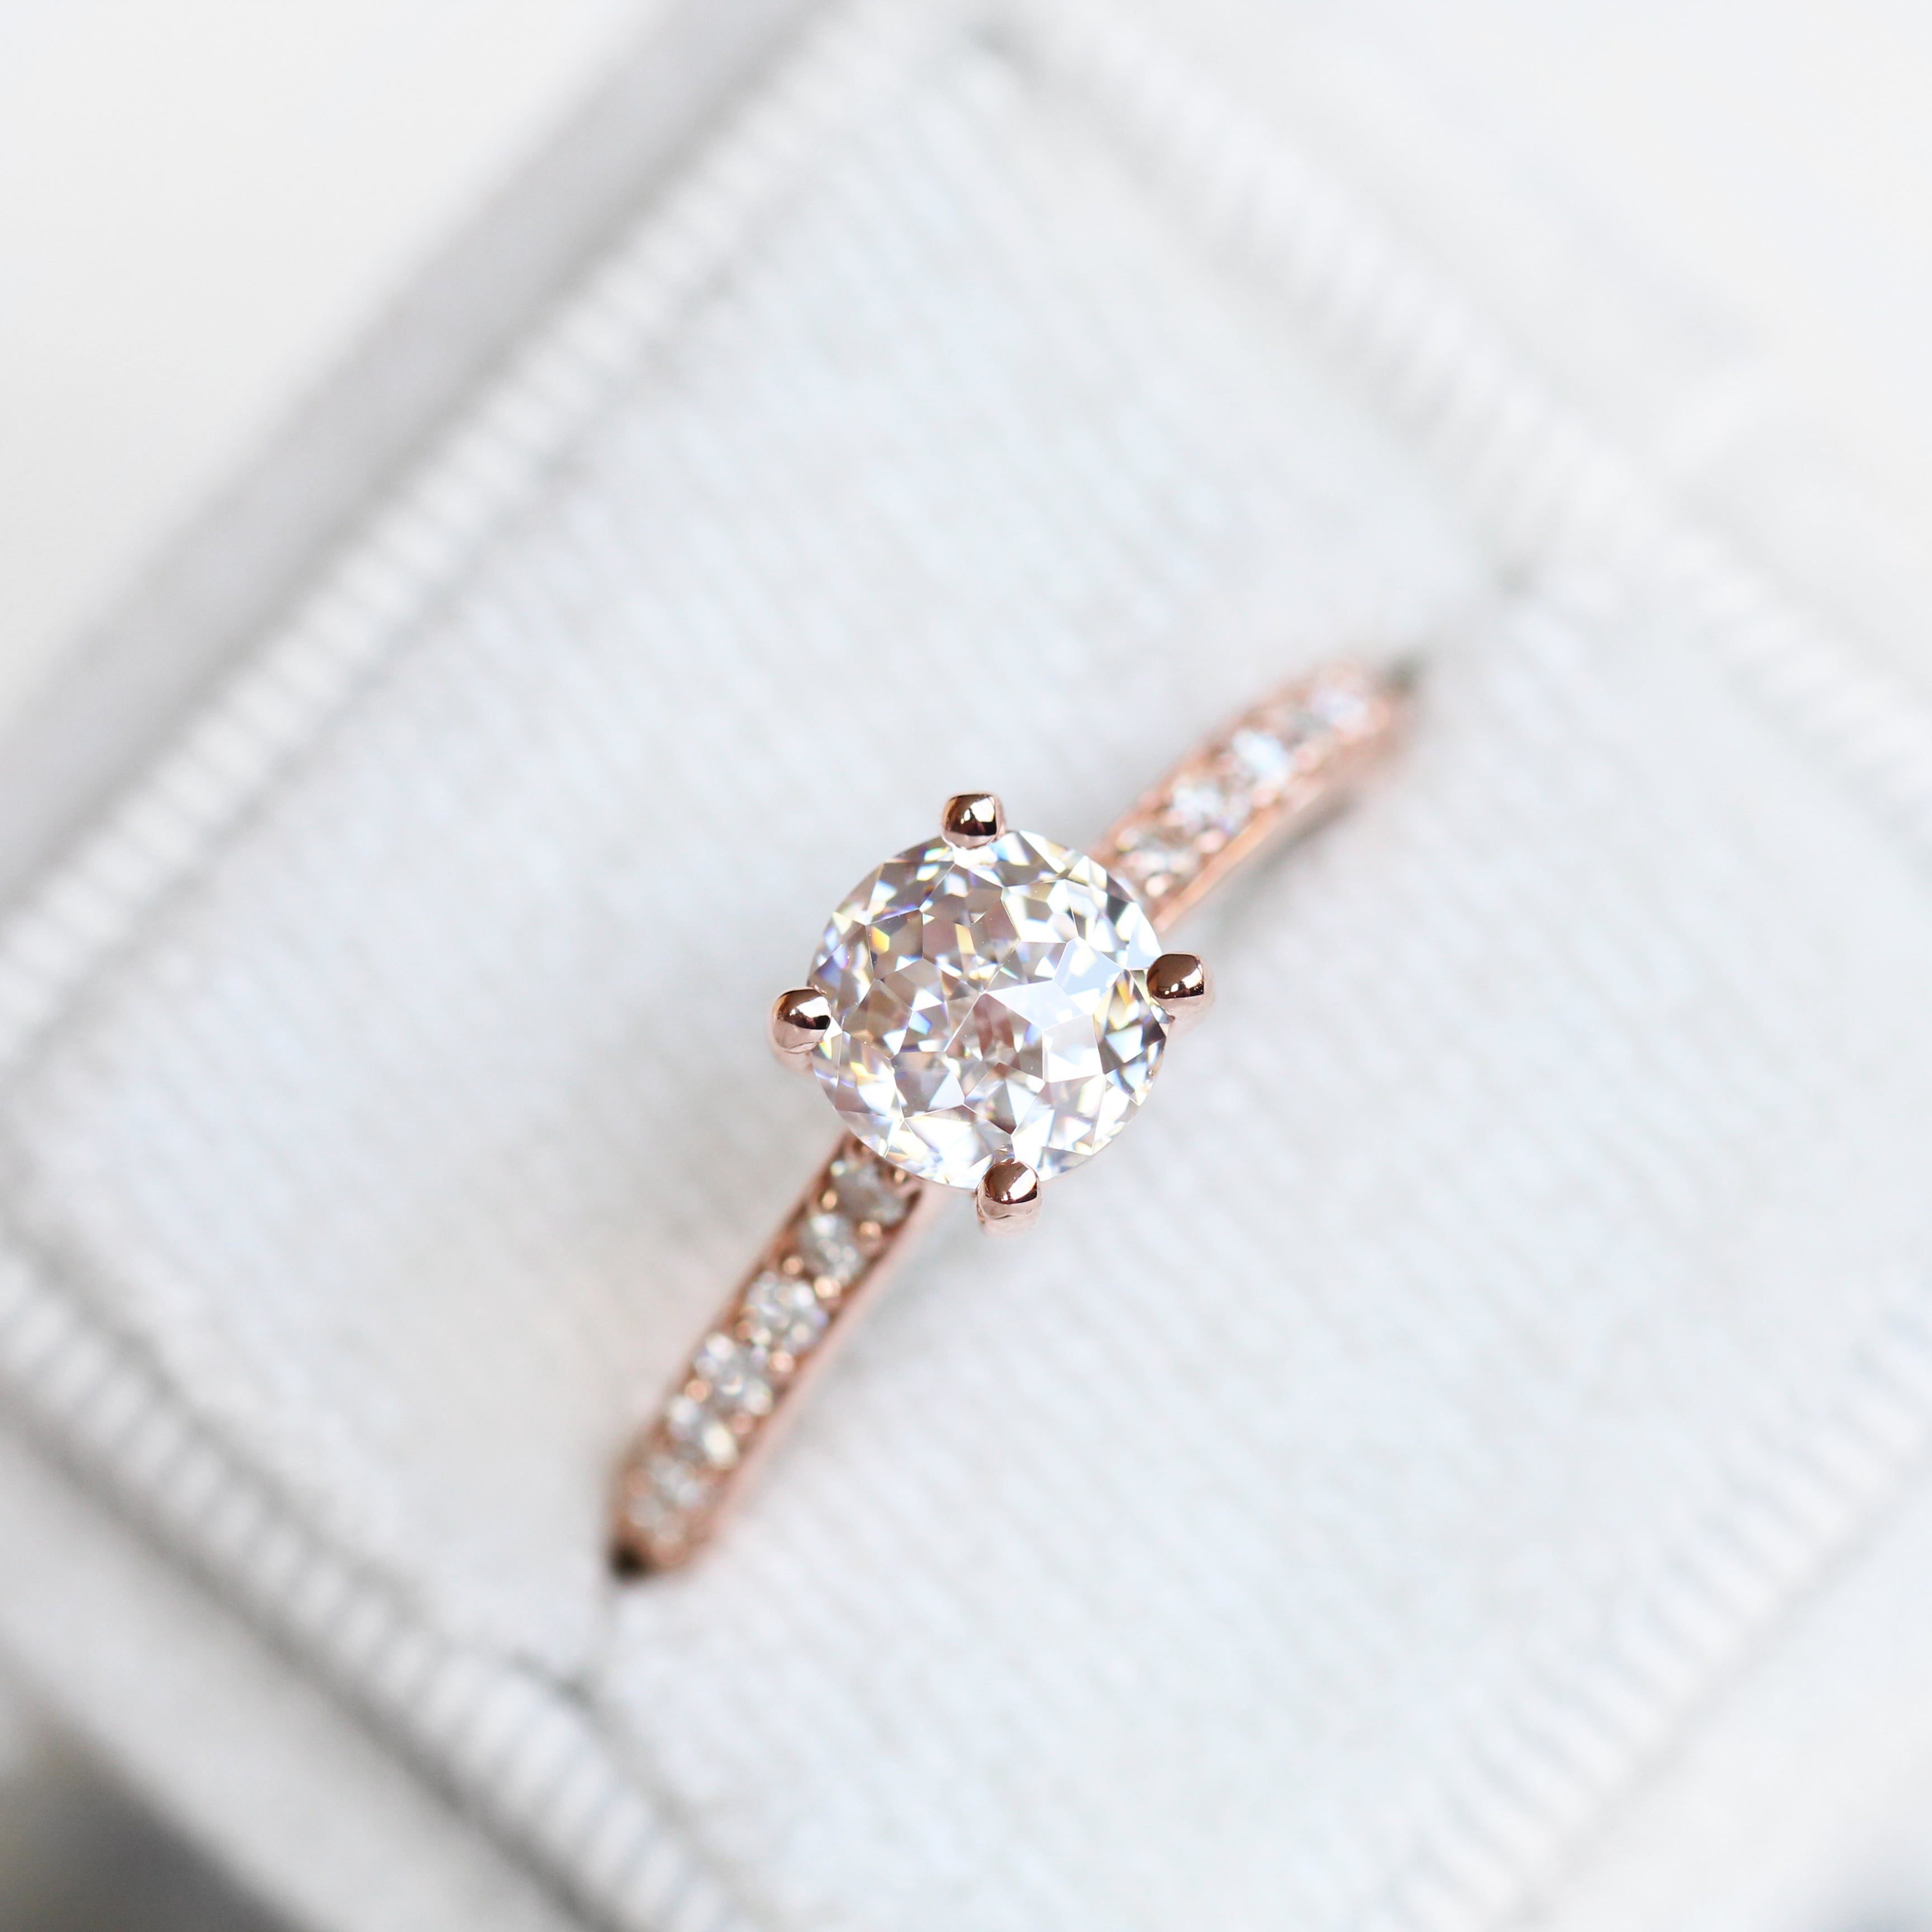 Raine Ring with 1.20ct Jubilee Cut Moissanite in 10k Rose Gold - Ready to Size and Ship - Celestial Diamonds ® by Midwinter Co.